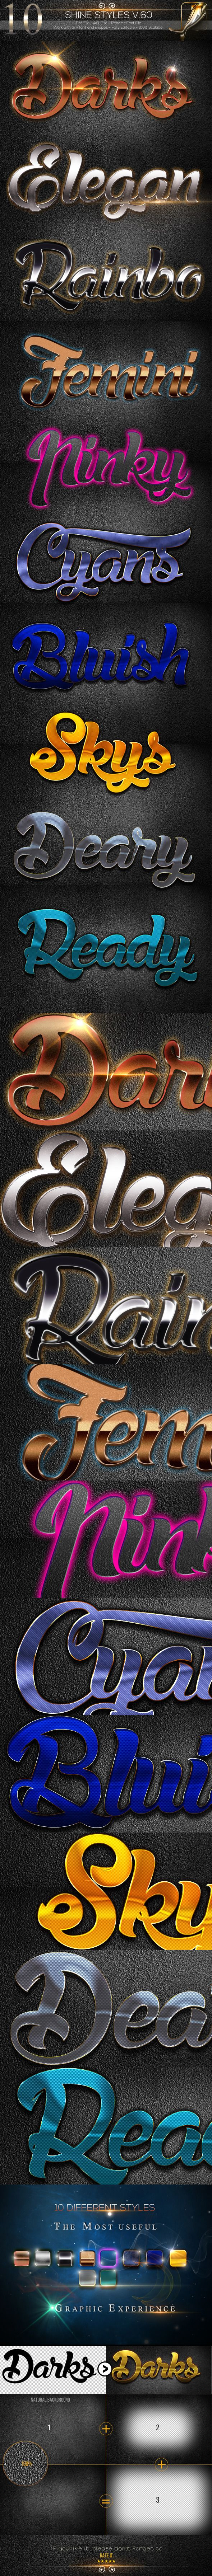 Text Style for Photoshop. Download here: http://graphicriver.net/item/text-style-v60/12281065?ref=ksioks